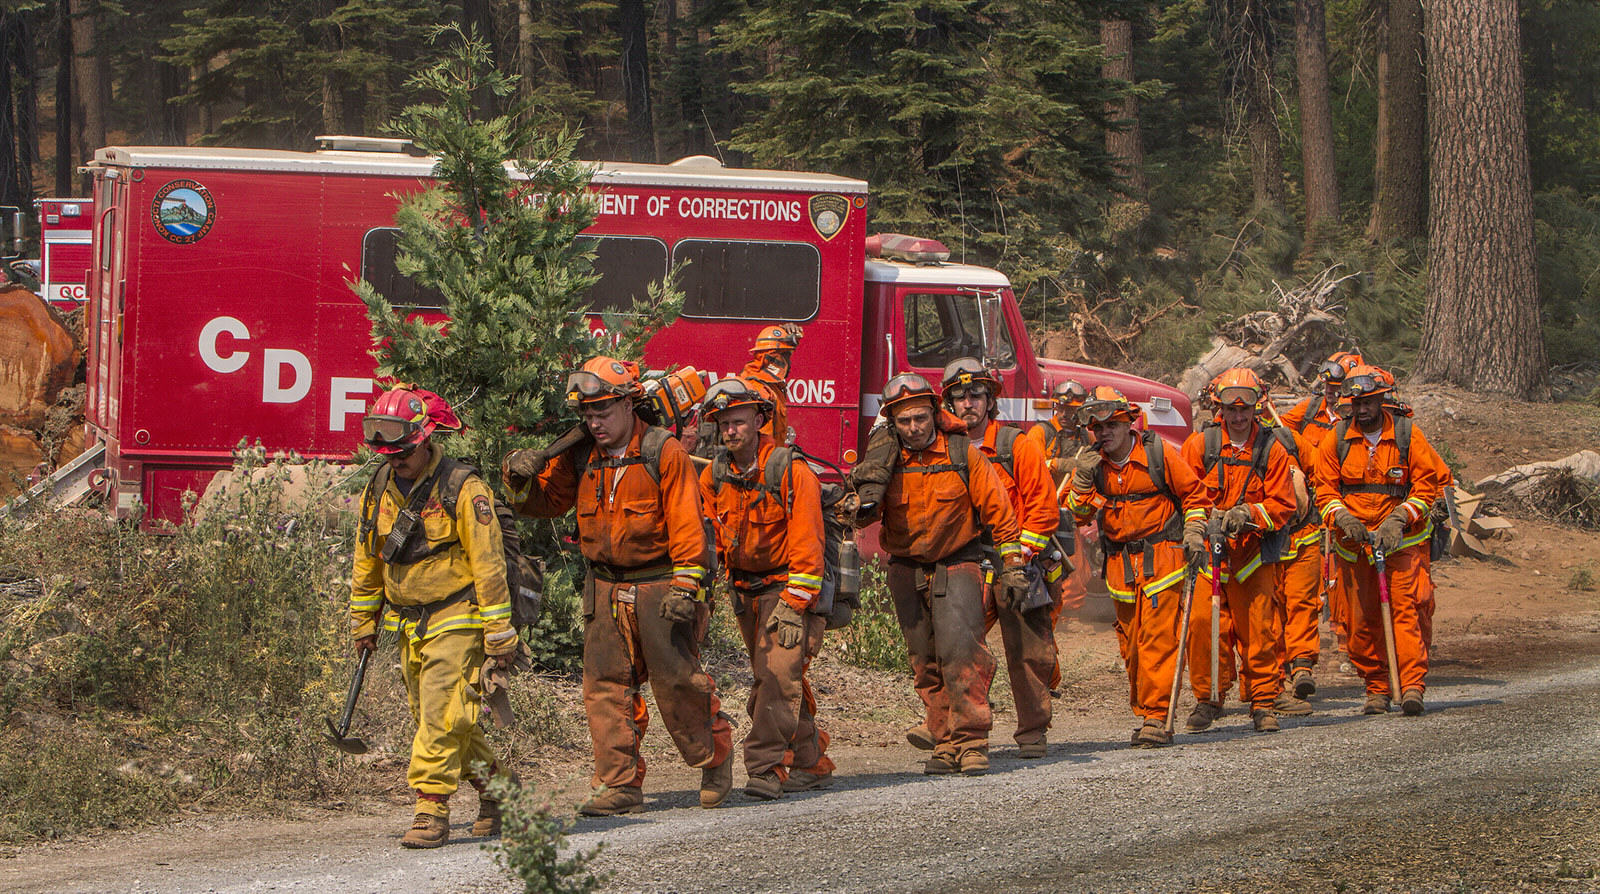 UNILAD california fire 17 Thousands Of Prisoners Are Fighting Wildfires In California For Less Than $2 A Day